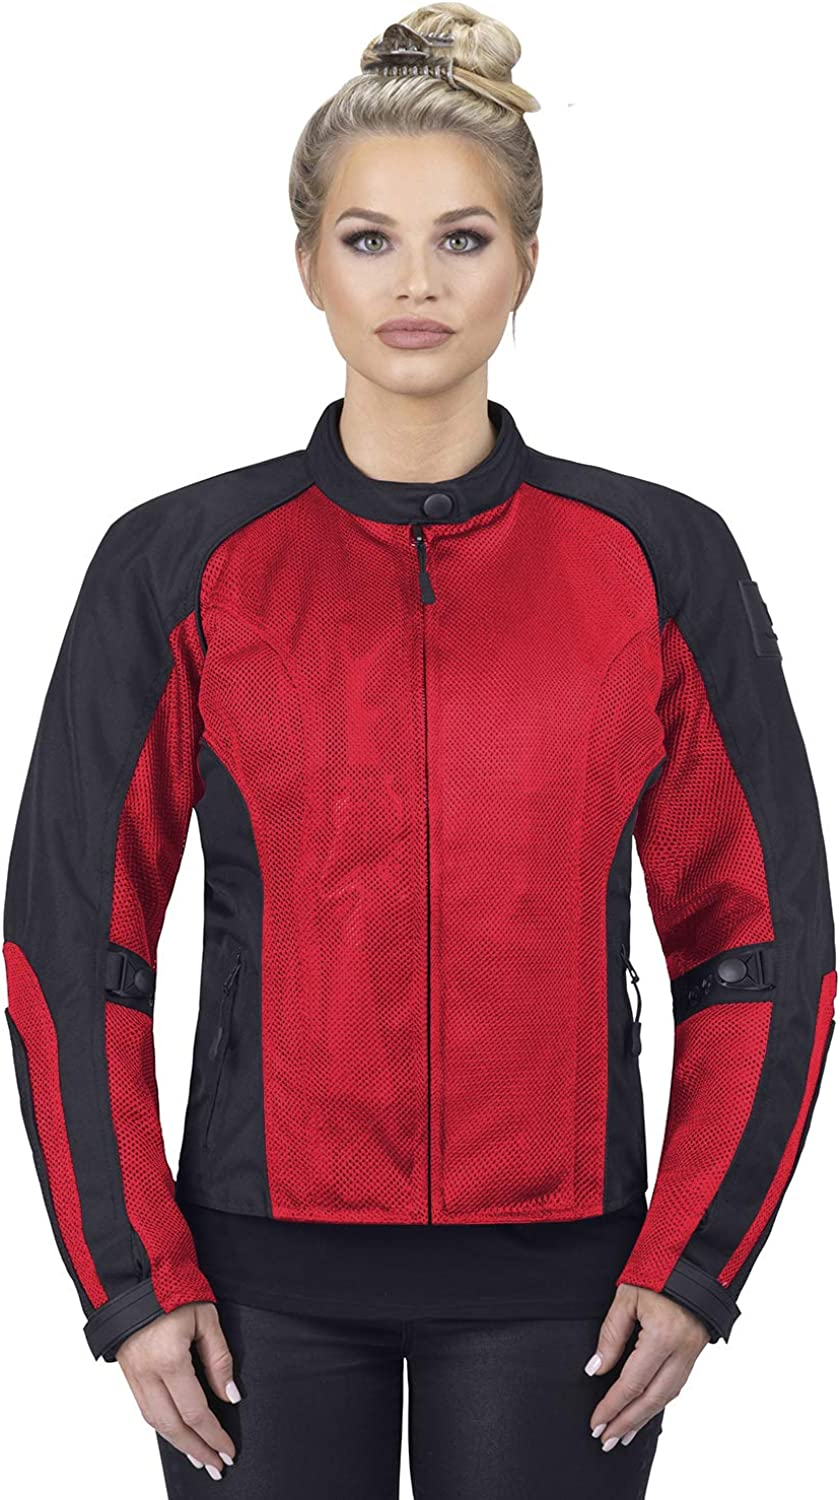 Viking Cycle Motorcycle Jackets for Women Viking Cycle Warlock Women's Mesh Motorcycle Jacket